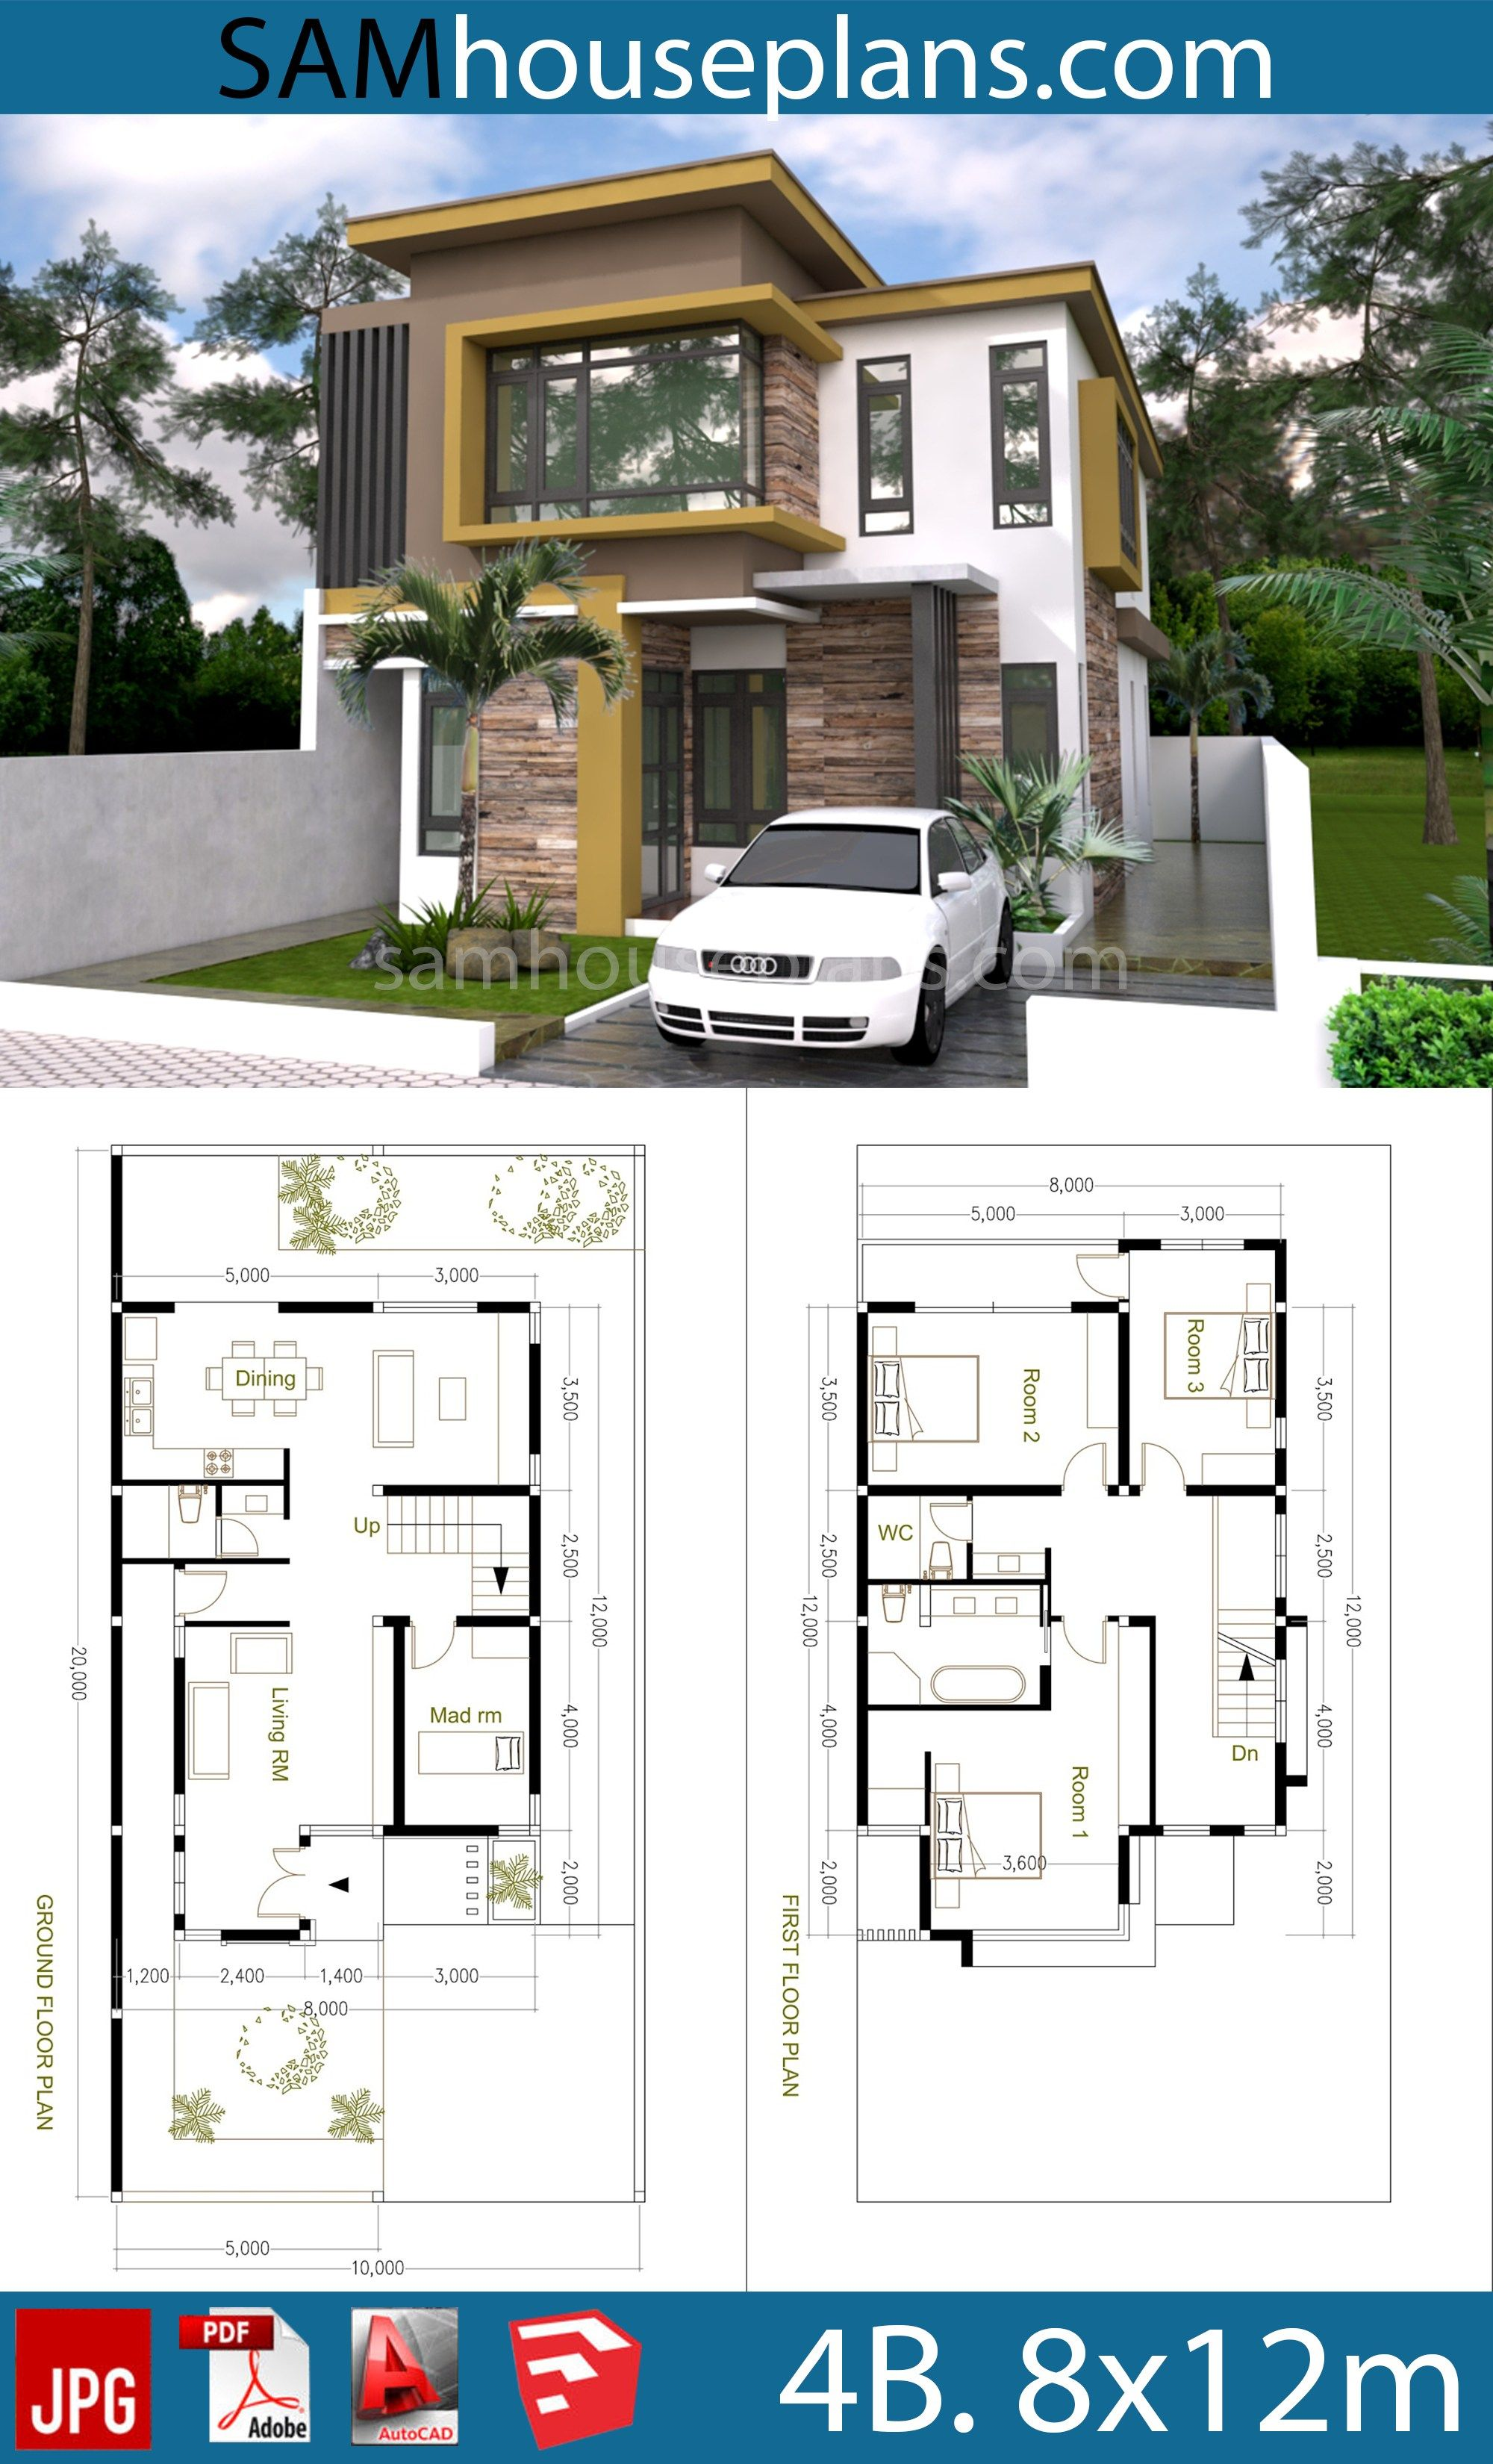 House Plans 8x12m With 4 Bedrooms Samhouseplans 2 Storey House Design Building Plans House Two Storey House Plans